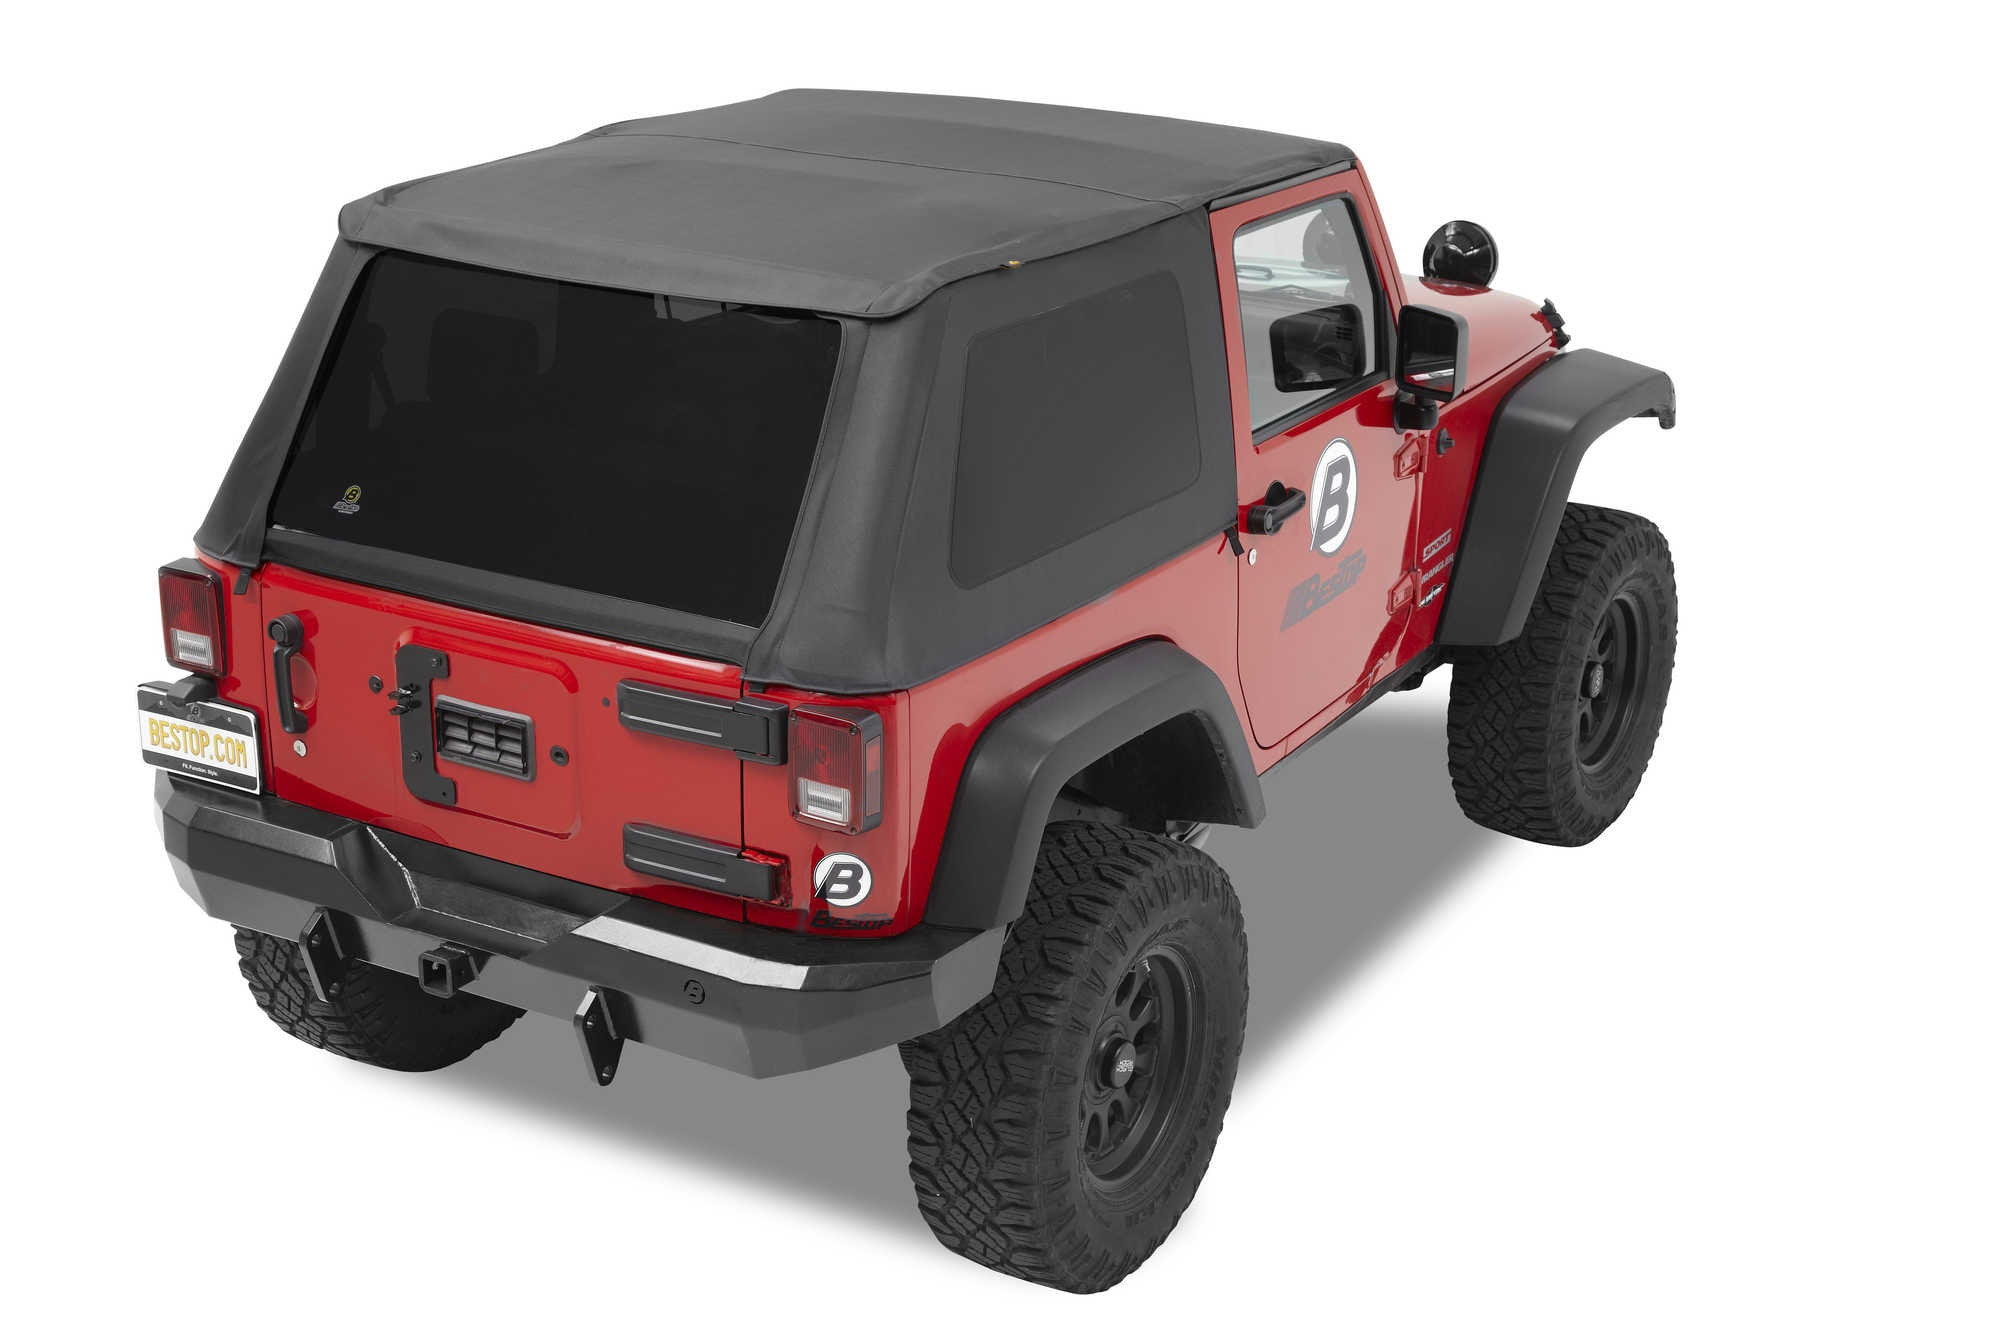 jk tops - black dog offroad